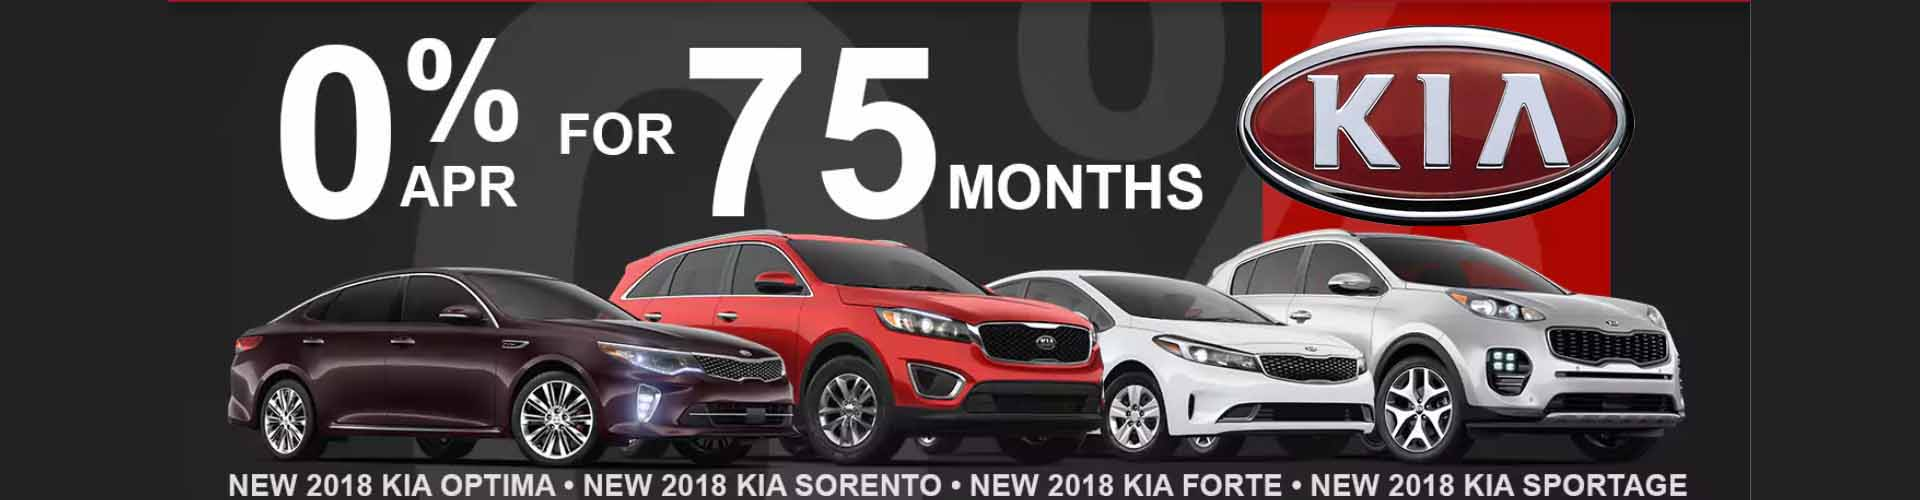 Kia of lincoln new used car dealership near beatrice ne for Department of motor vehicles lincoln nebraska